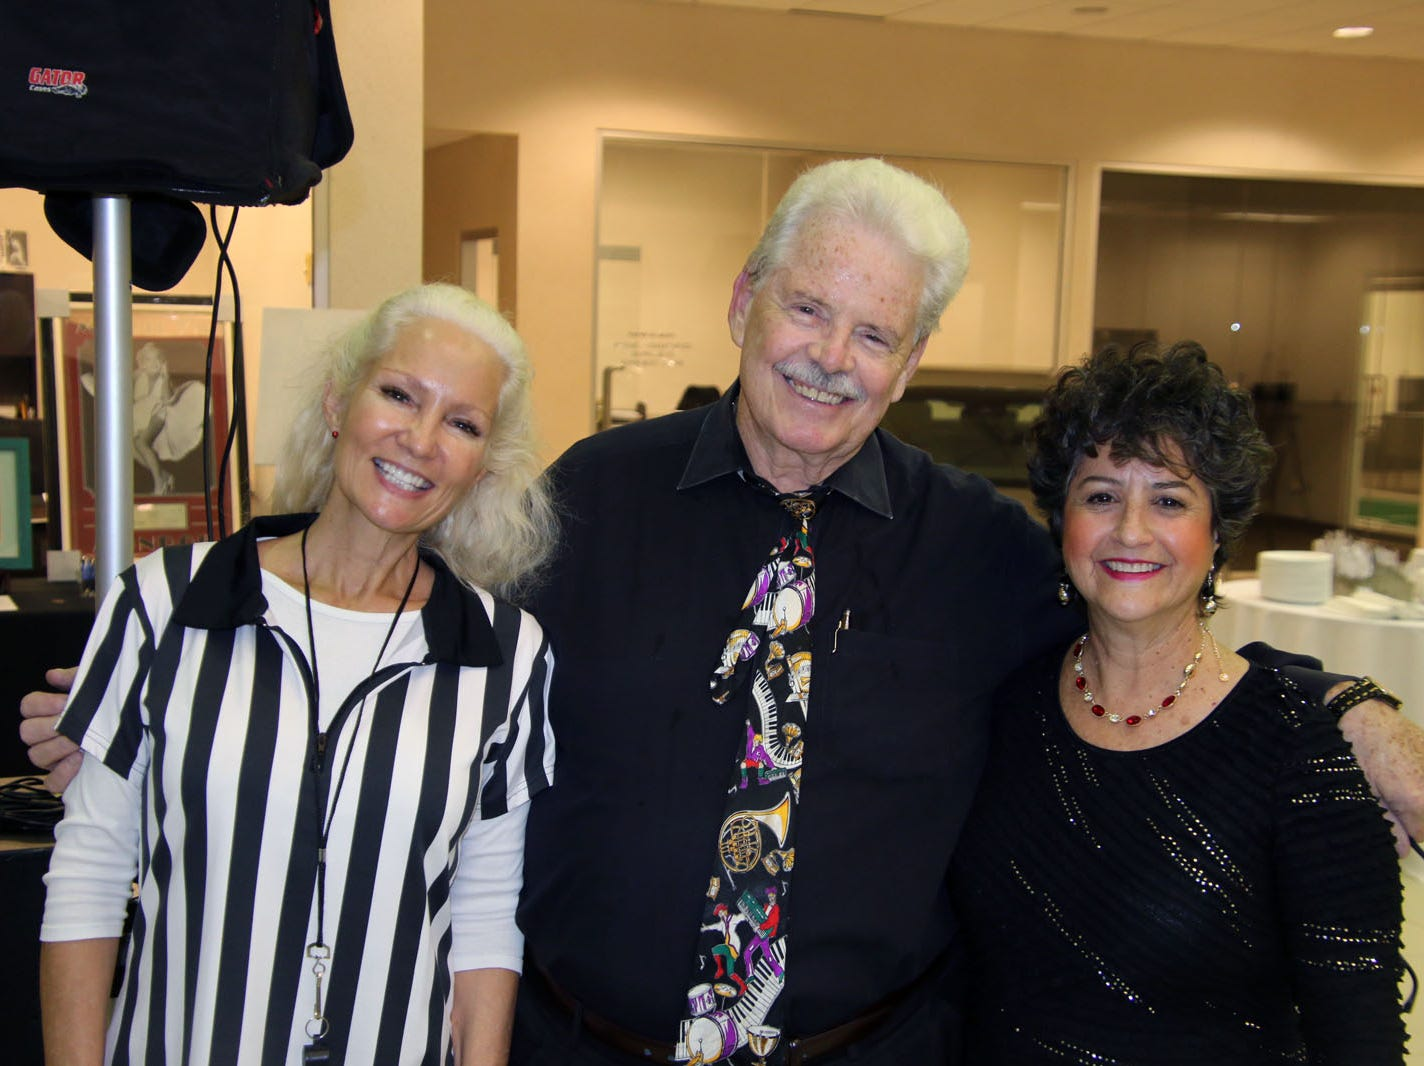 Voices for Children volunteer Kip Lyman, left, with Don and Debbie Bestor of the Sunrise Party Band at the Ultimate Tailgate Party.